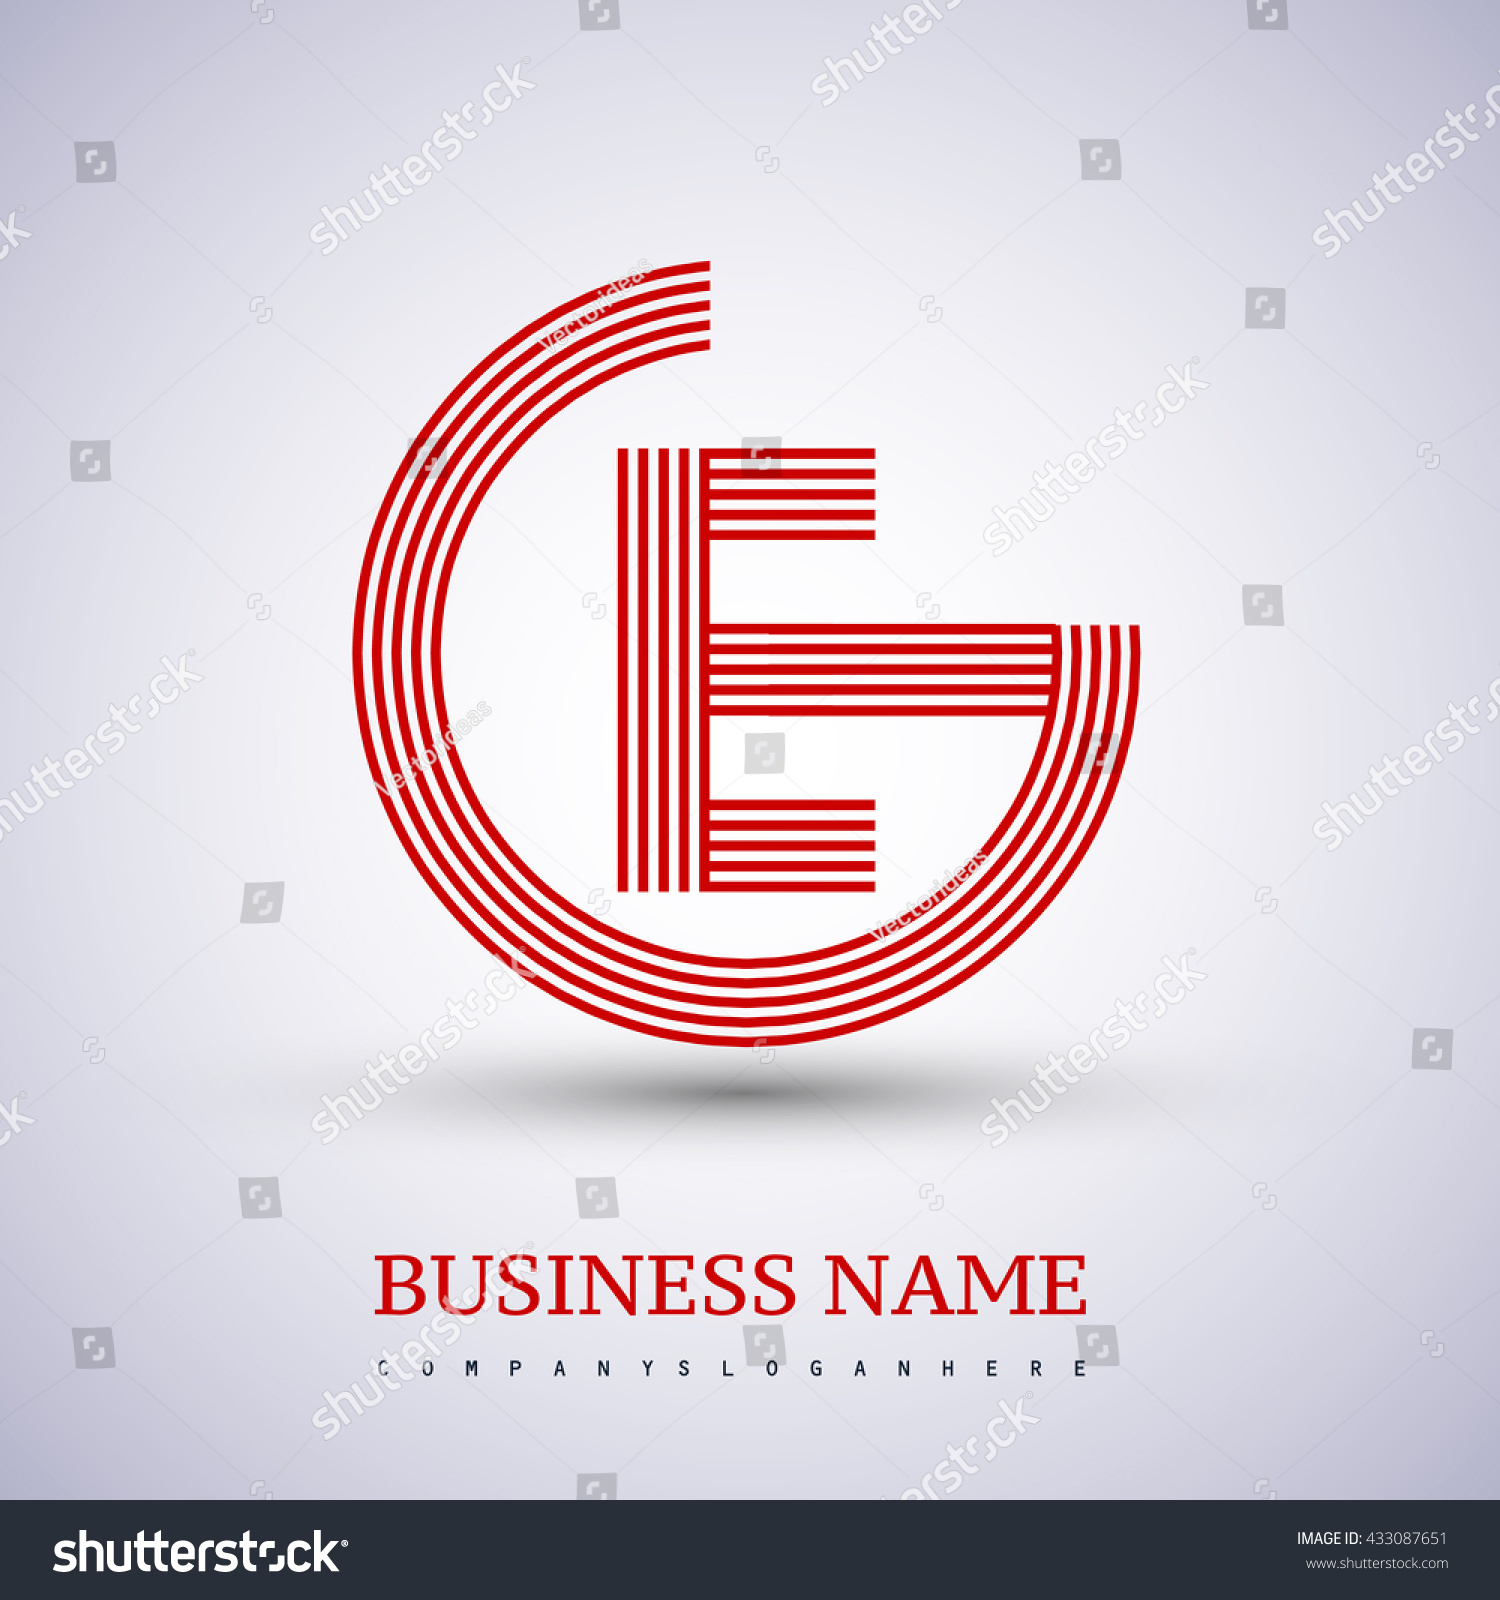 Letter ge linked logo design circle stock vector 433087651 letter ge or eg linked logo design circle g shape elegant red colored symbol biocorpaavc Gallery